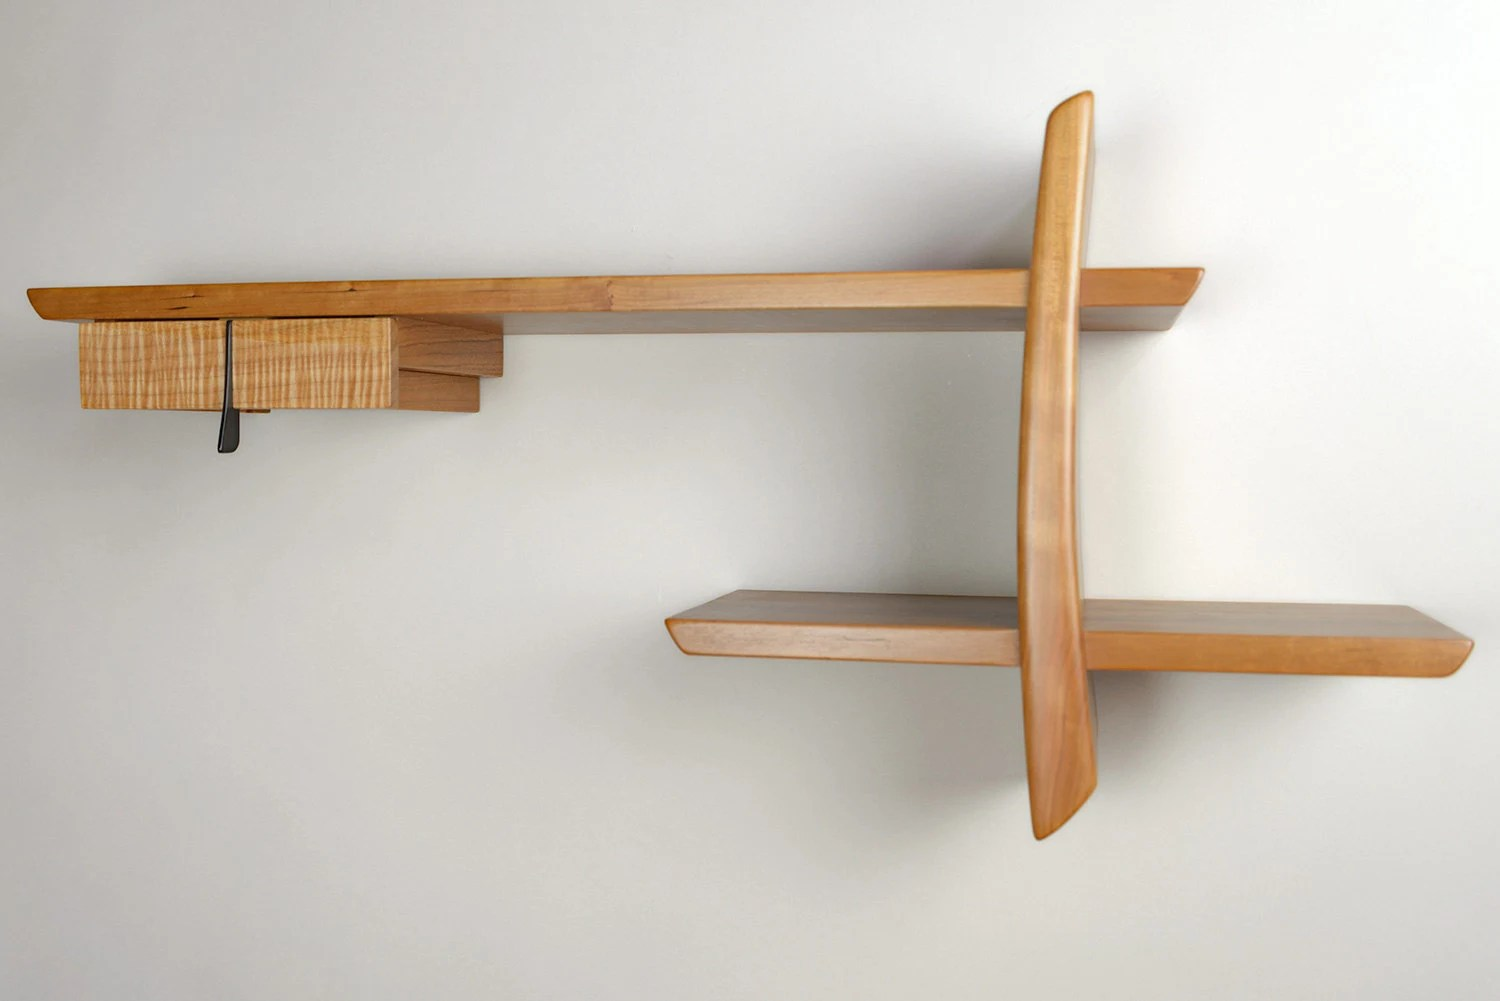 Japanese Inspired Solid Cherry And Maple Wood Wall Shelf